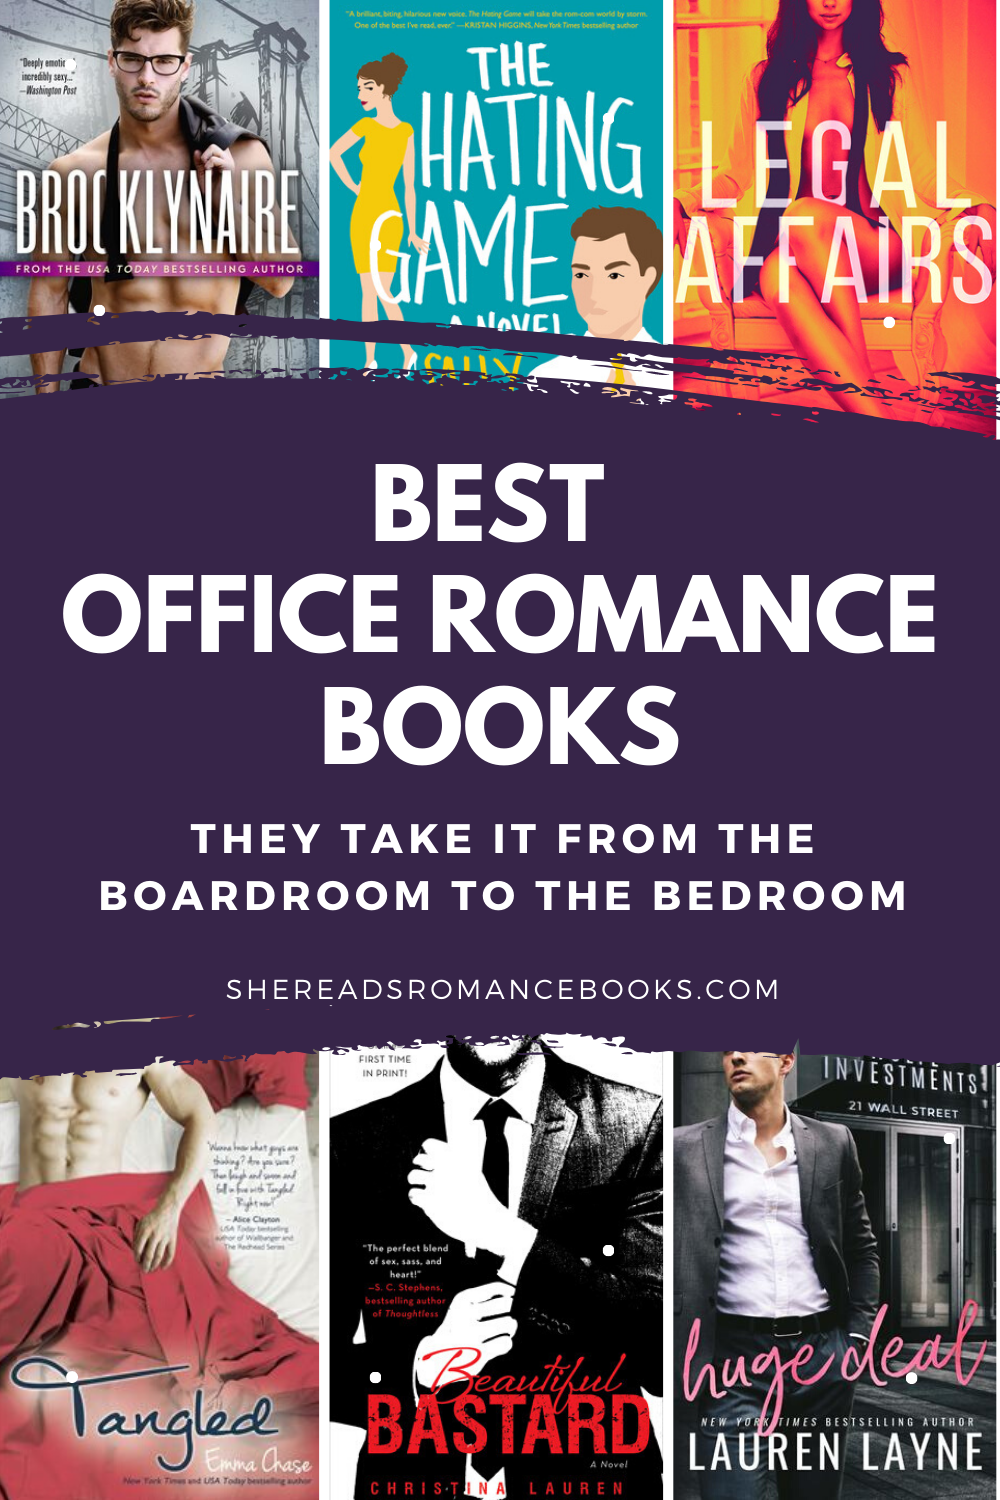 Book list of the best office romance books worth reading.